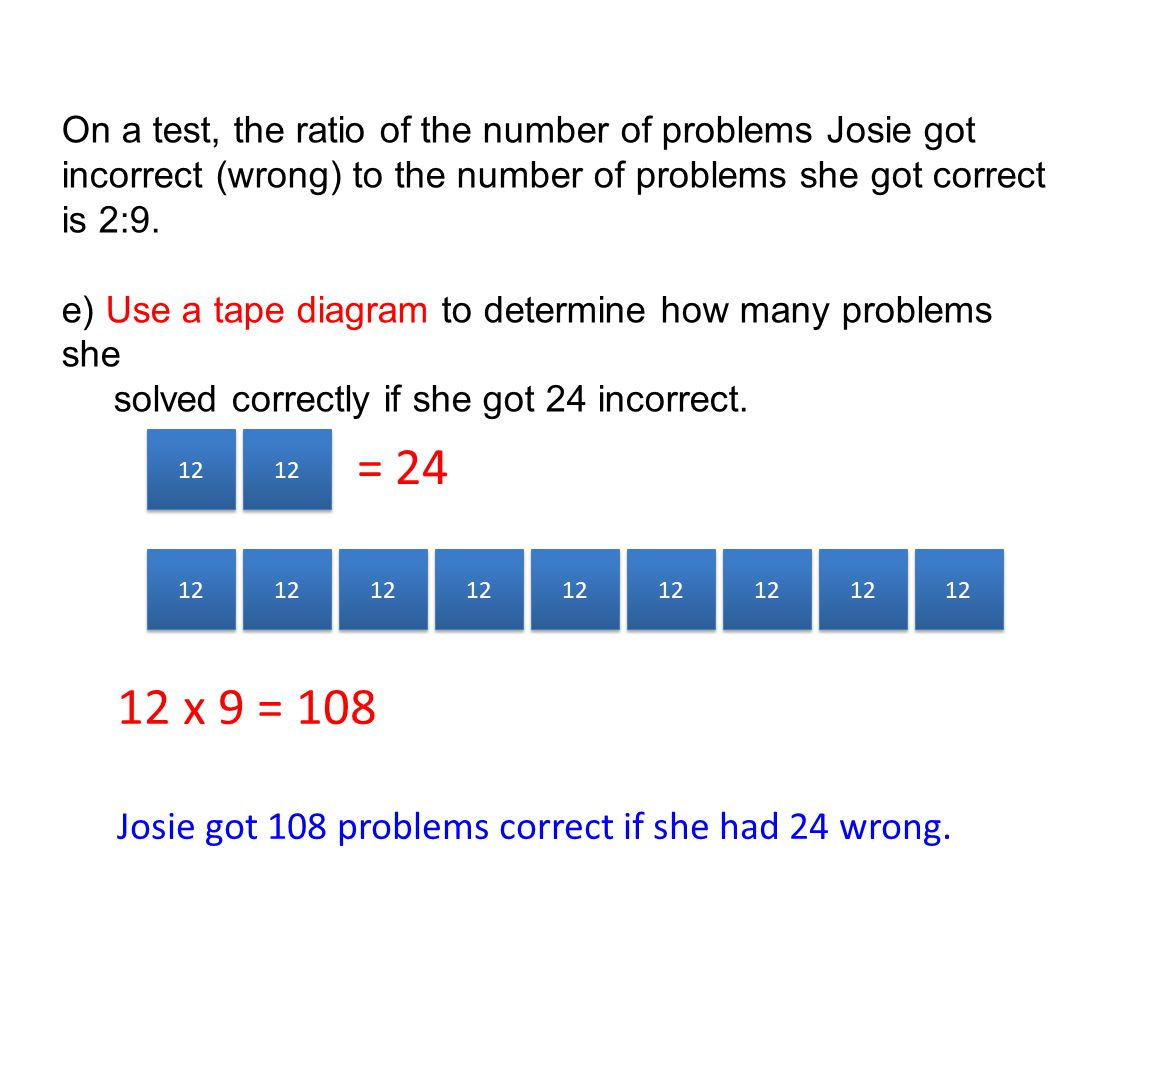 On a test, the ratio of the number of problems Josie got incorrect (wrong) to the number of problems she got correct is 2:9.